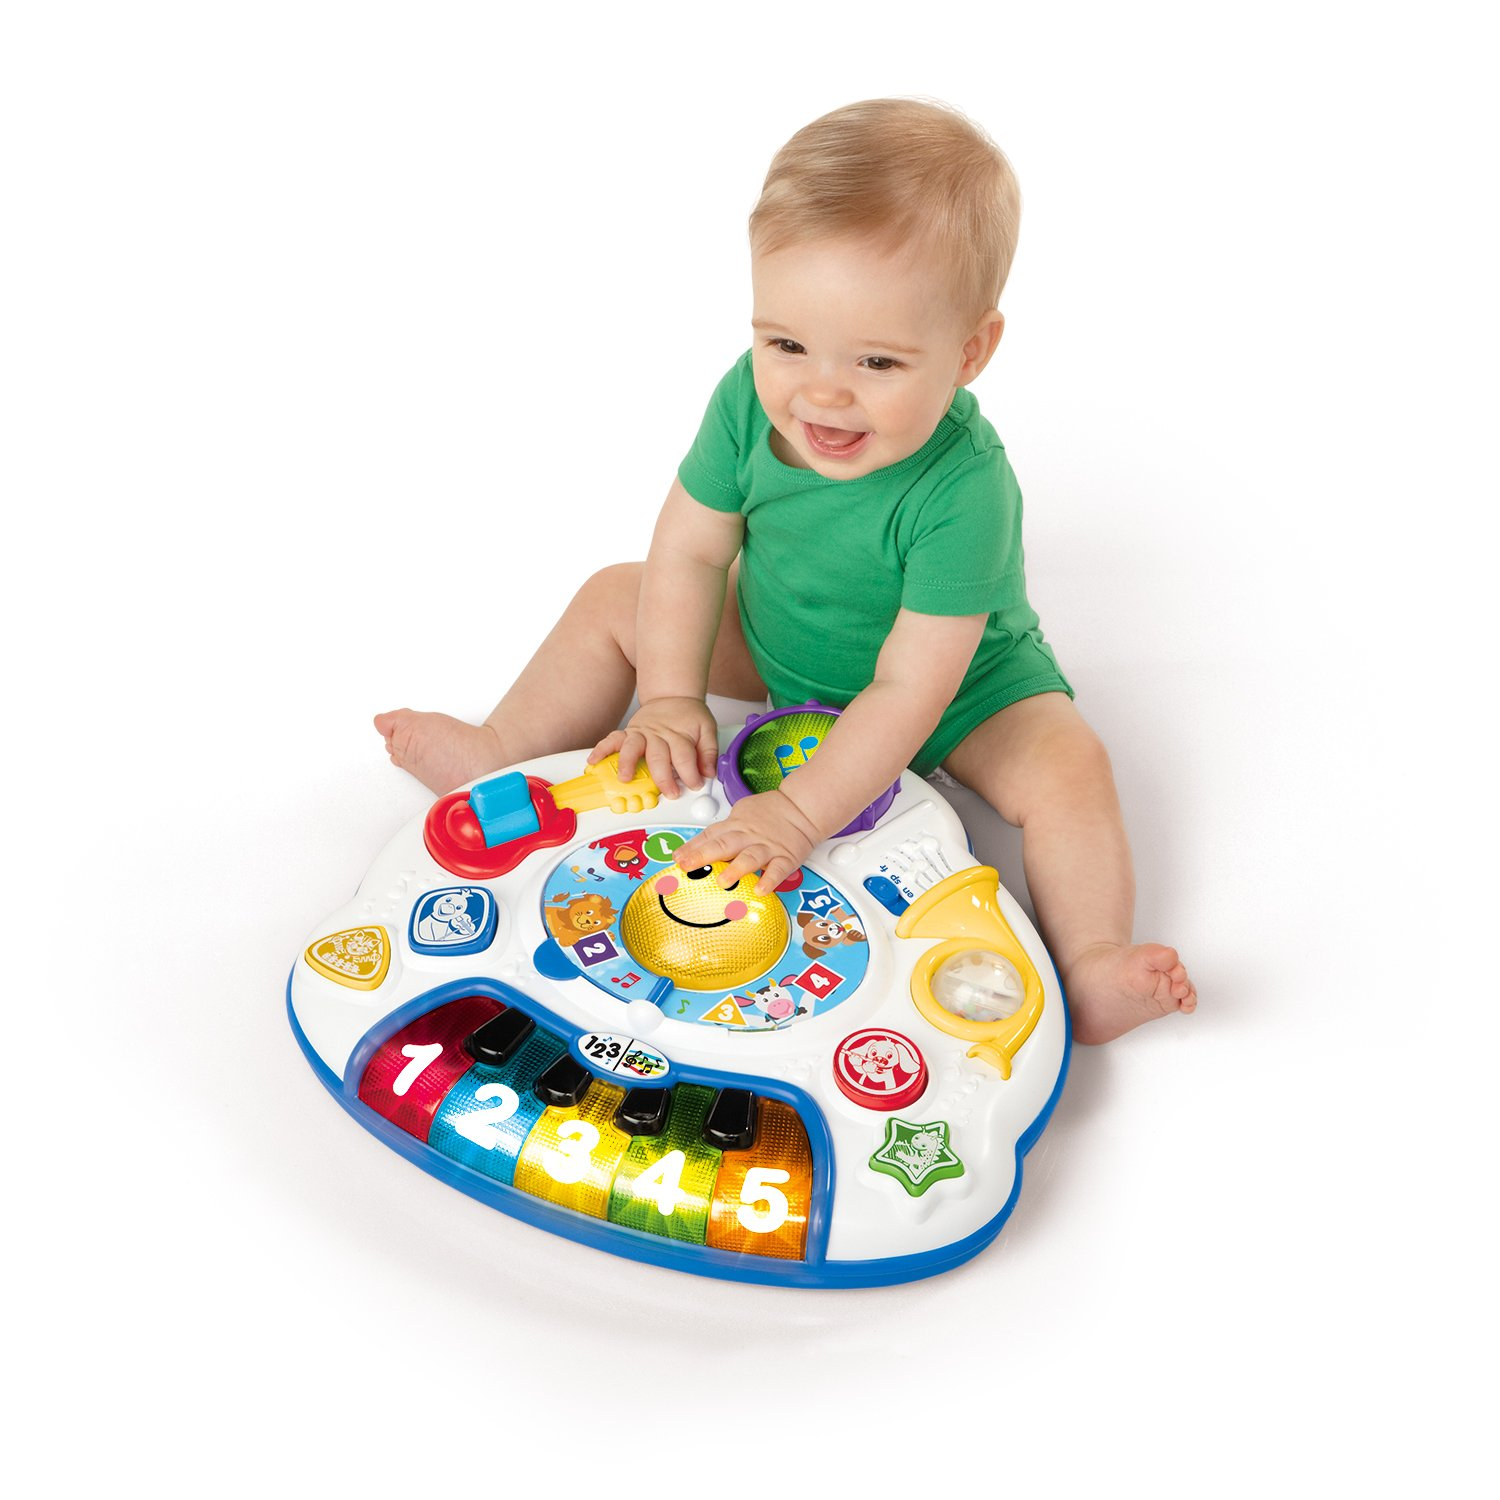 Amazing toys that Play Music for toddlers Images